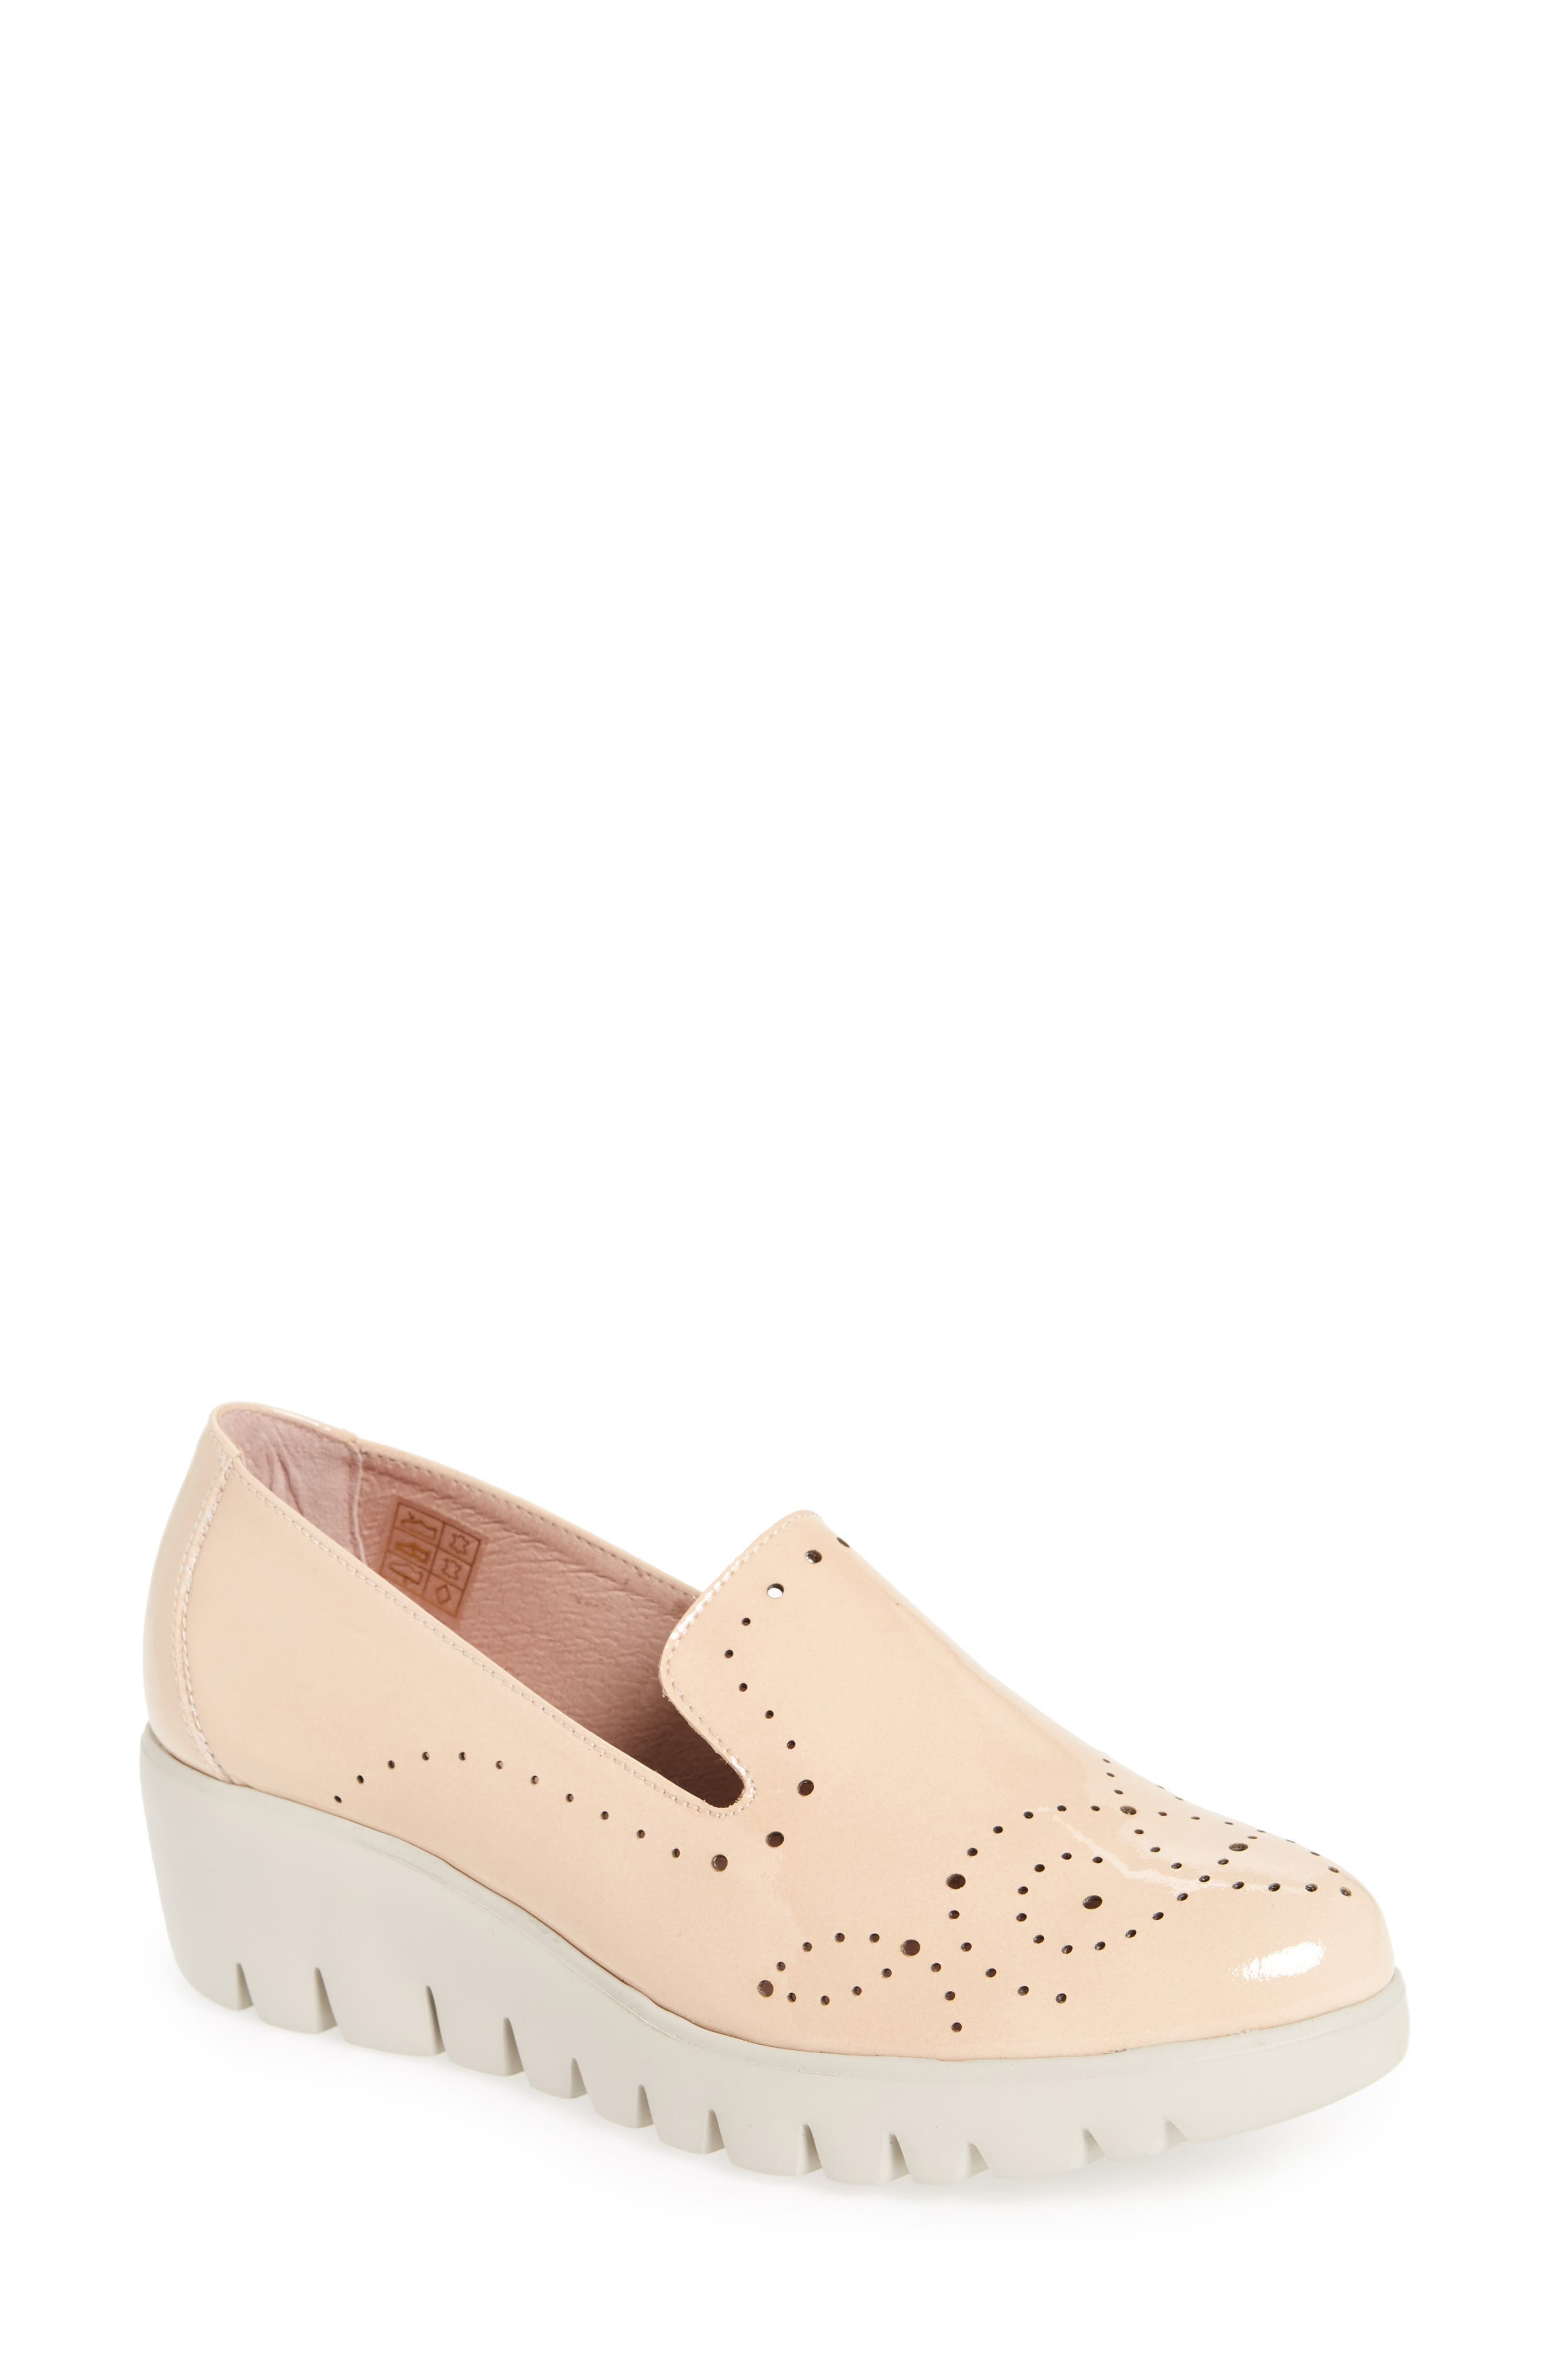 C-33114 Loafer Wedge,                         Main,                         color, Palo Beige Leather